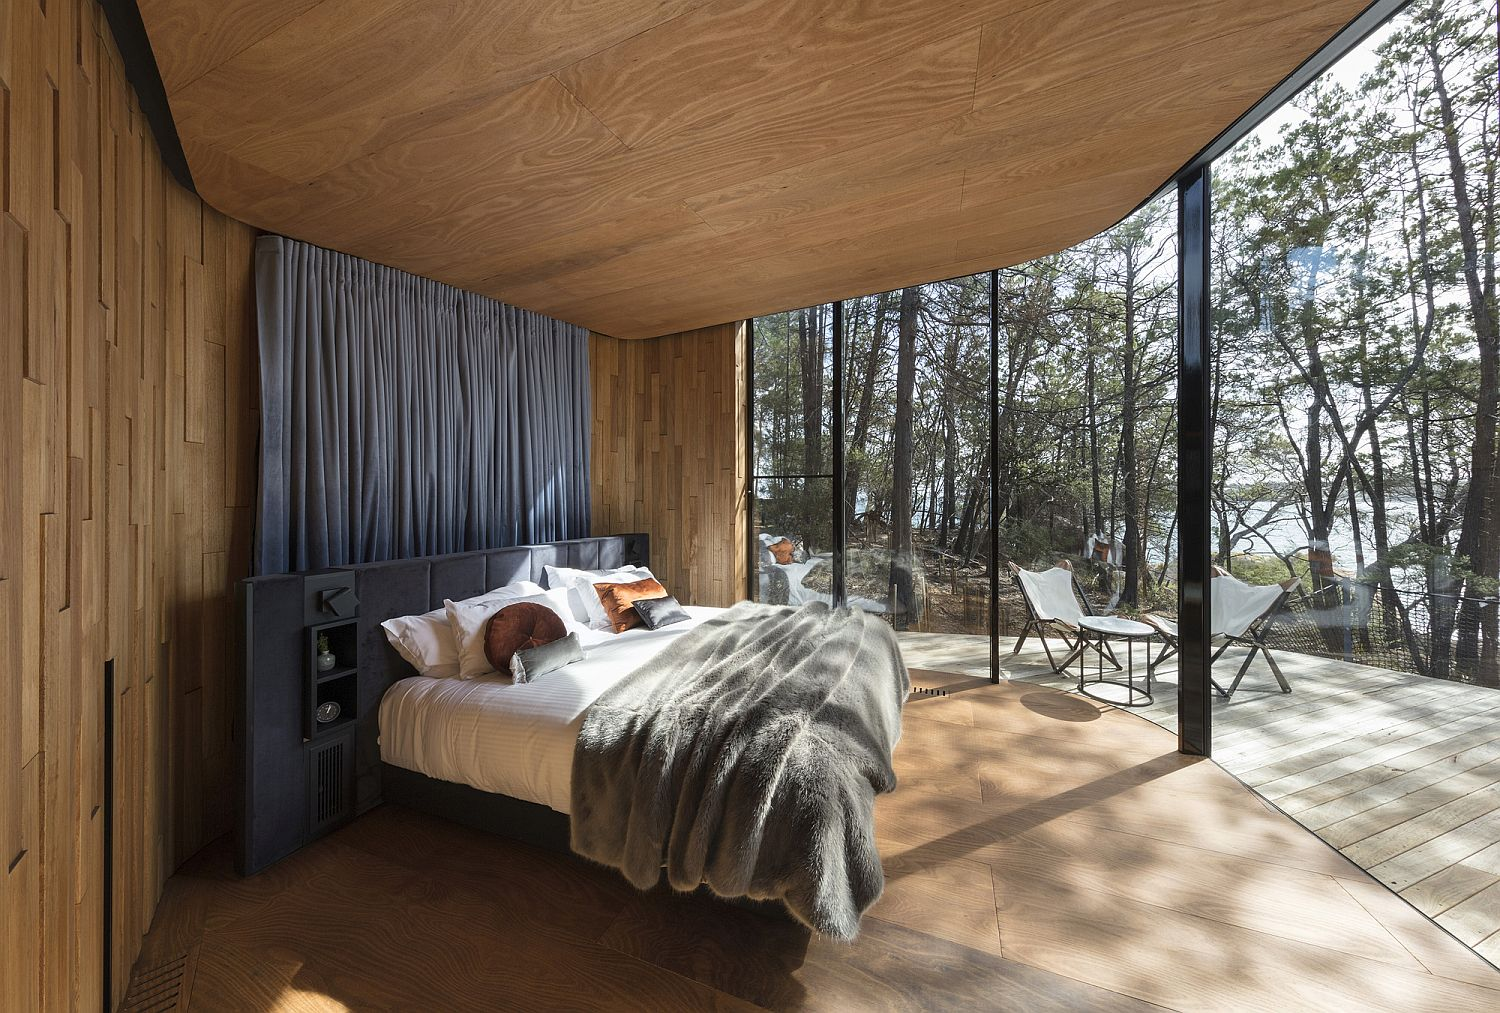 Bedrooms at the retreat connected with the outdoors